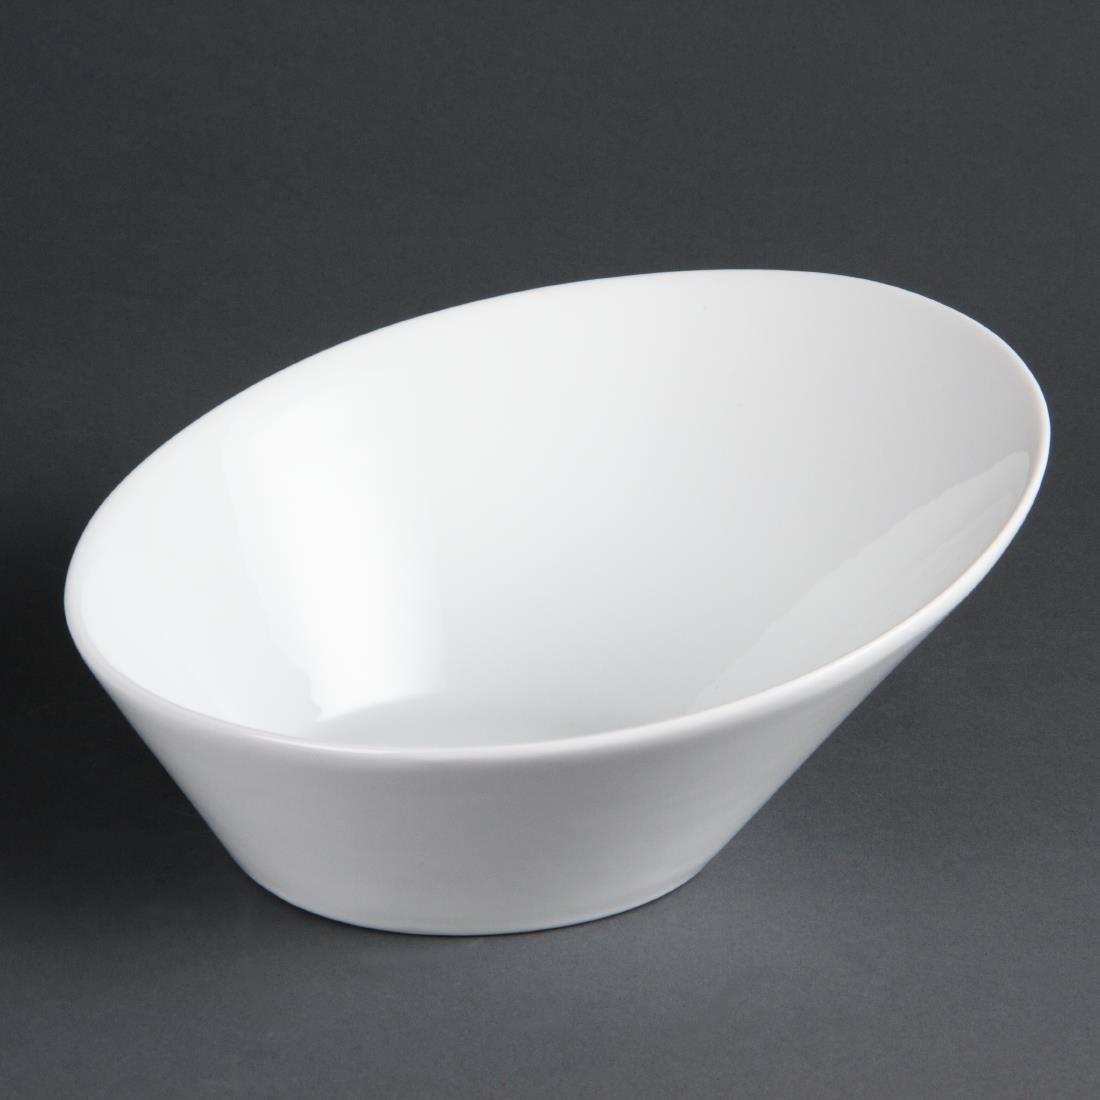 Olympia Whiteware Oval Sloping Bowls 222(W)x246(L)mm